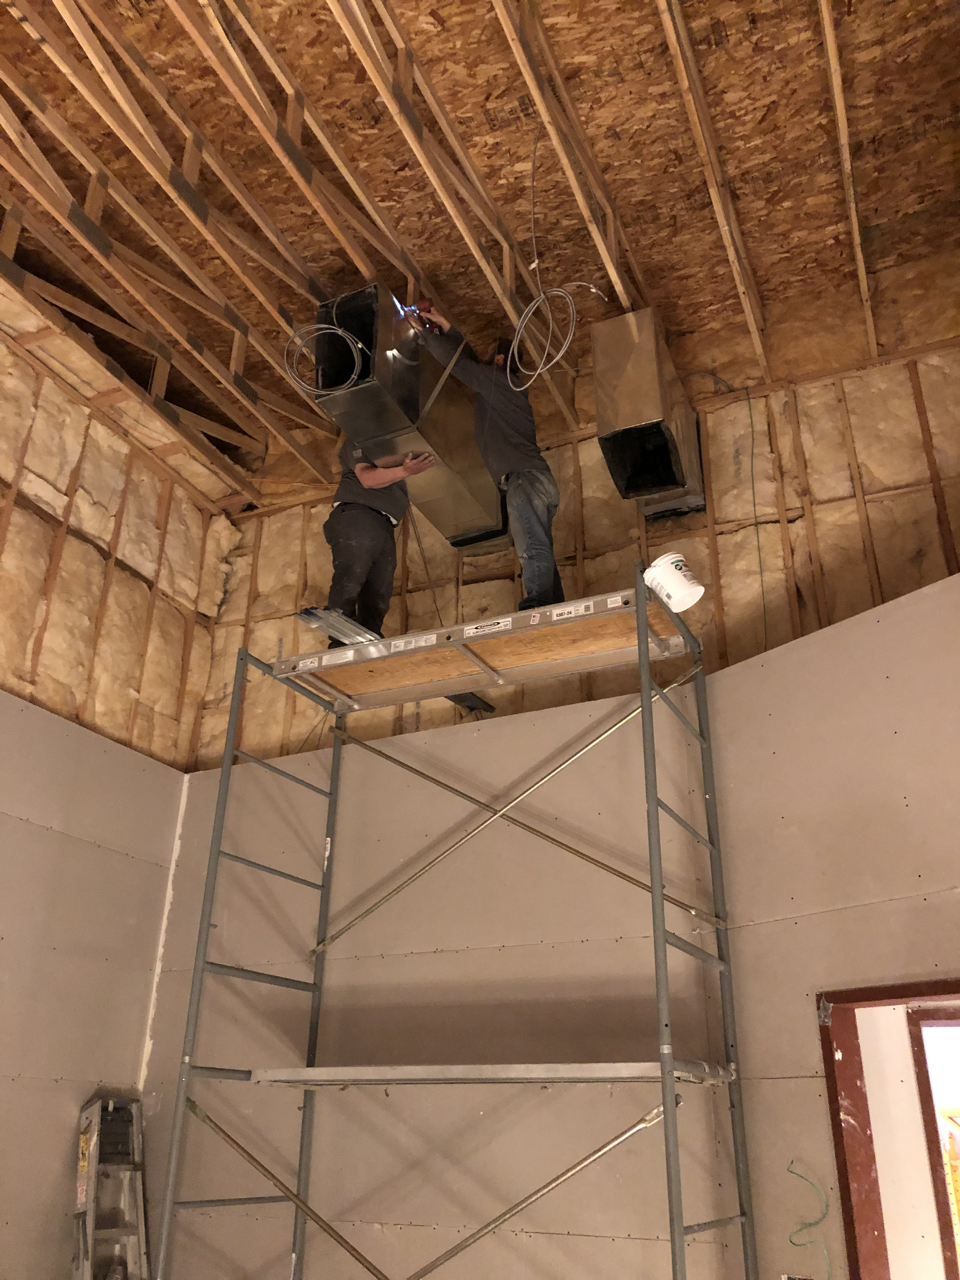 HVAC duct coming into the space above control room 2. It's a very tricky space to maneuver the ductwork through as they need to stay clear of the wire hanging from the trusses that will hold the ceiling structure.